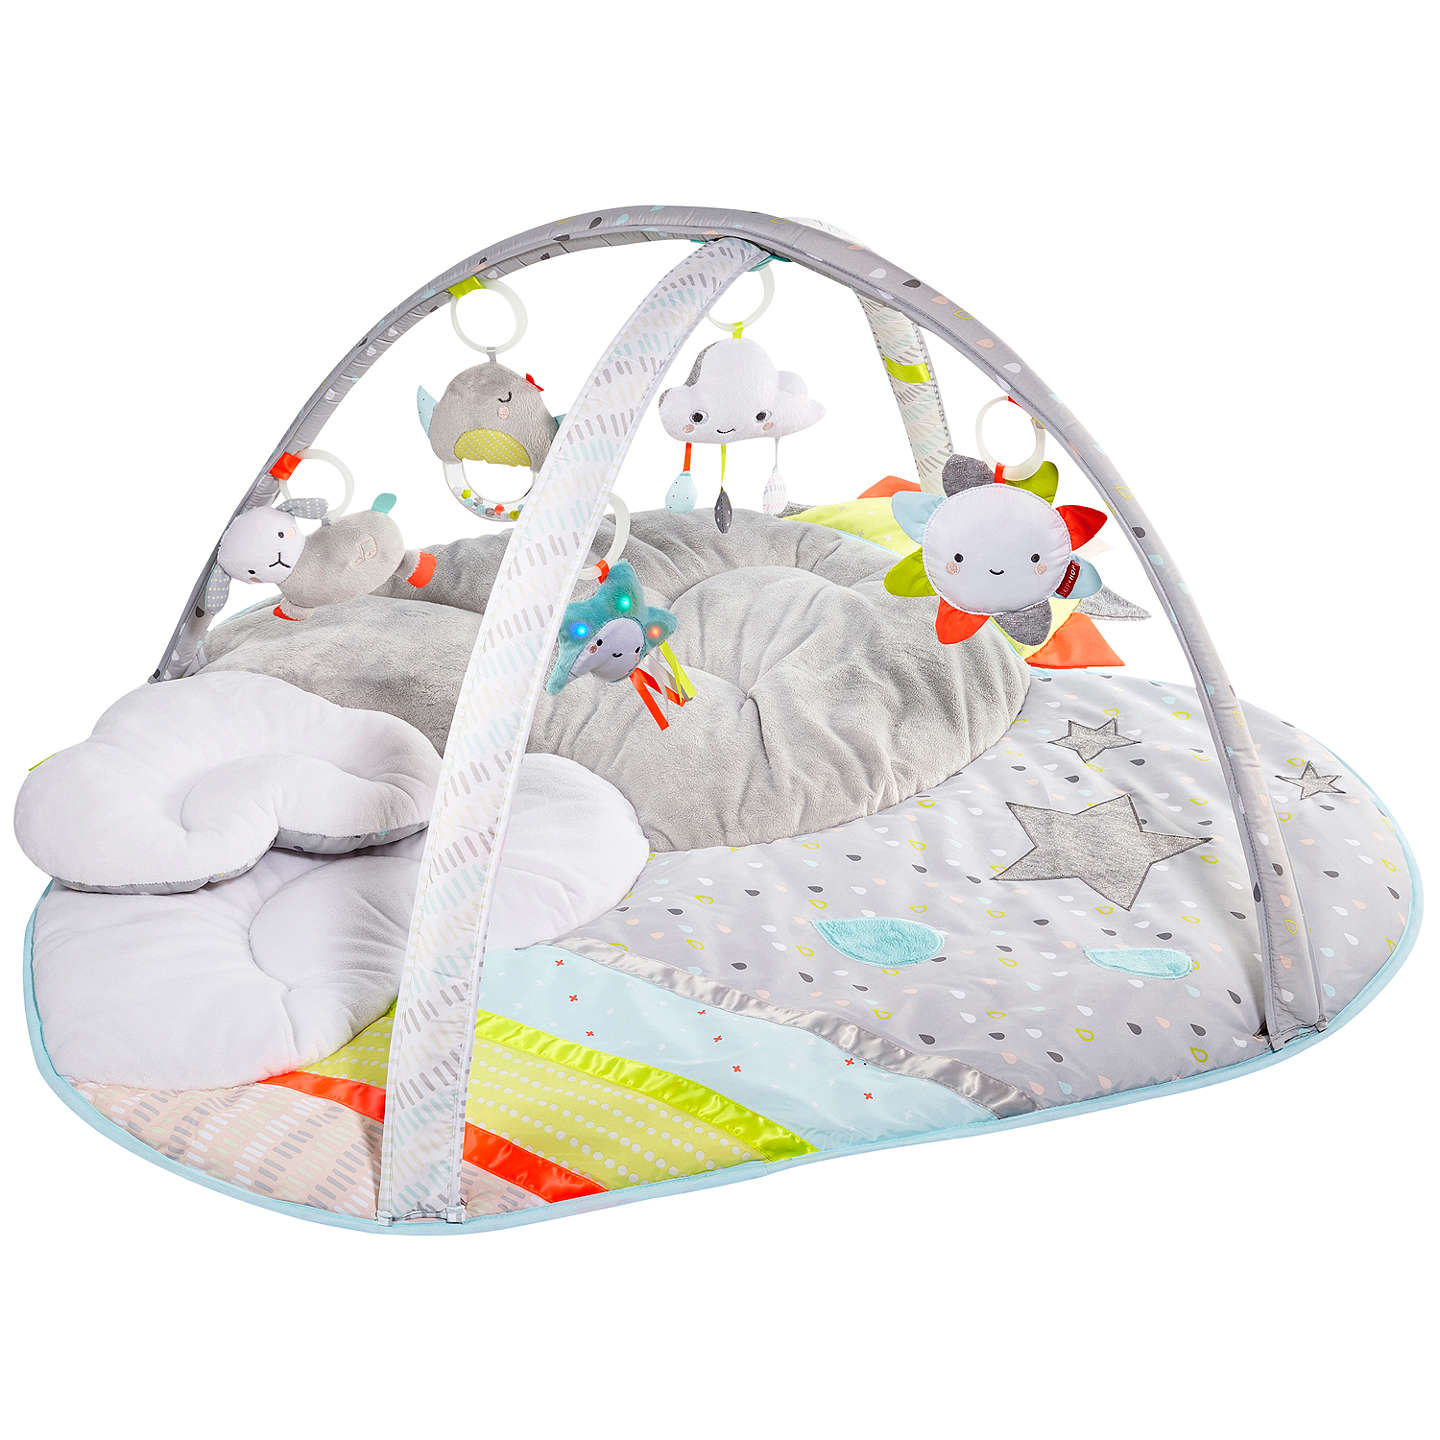 mat infantino with pit play grow products ball cuddlecircle activity gym me